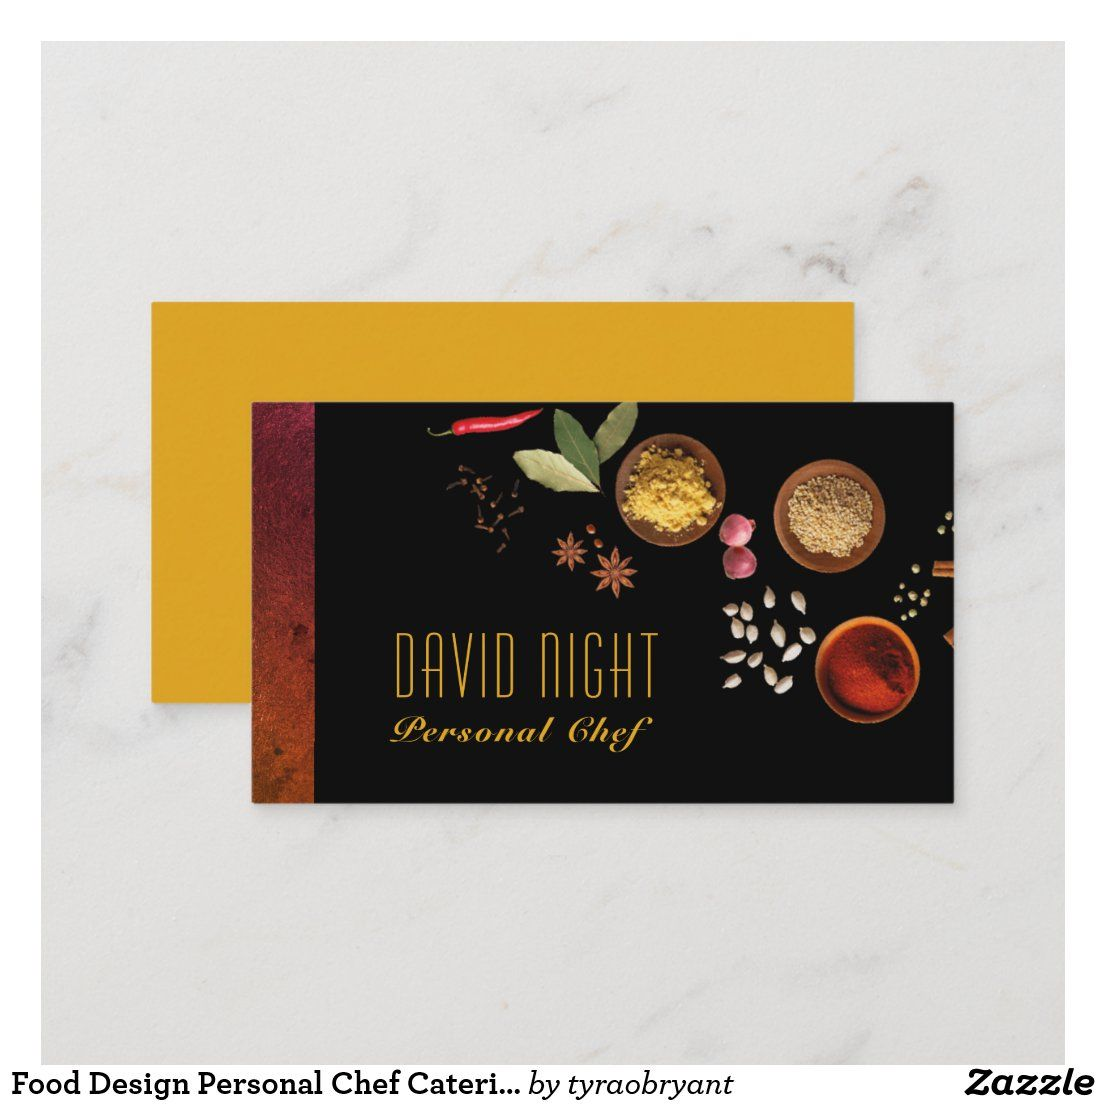 Food Design Personal Chef Catering Business Card Zazzle